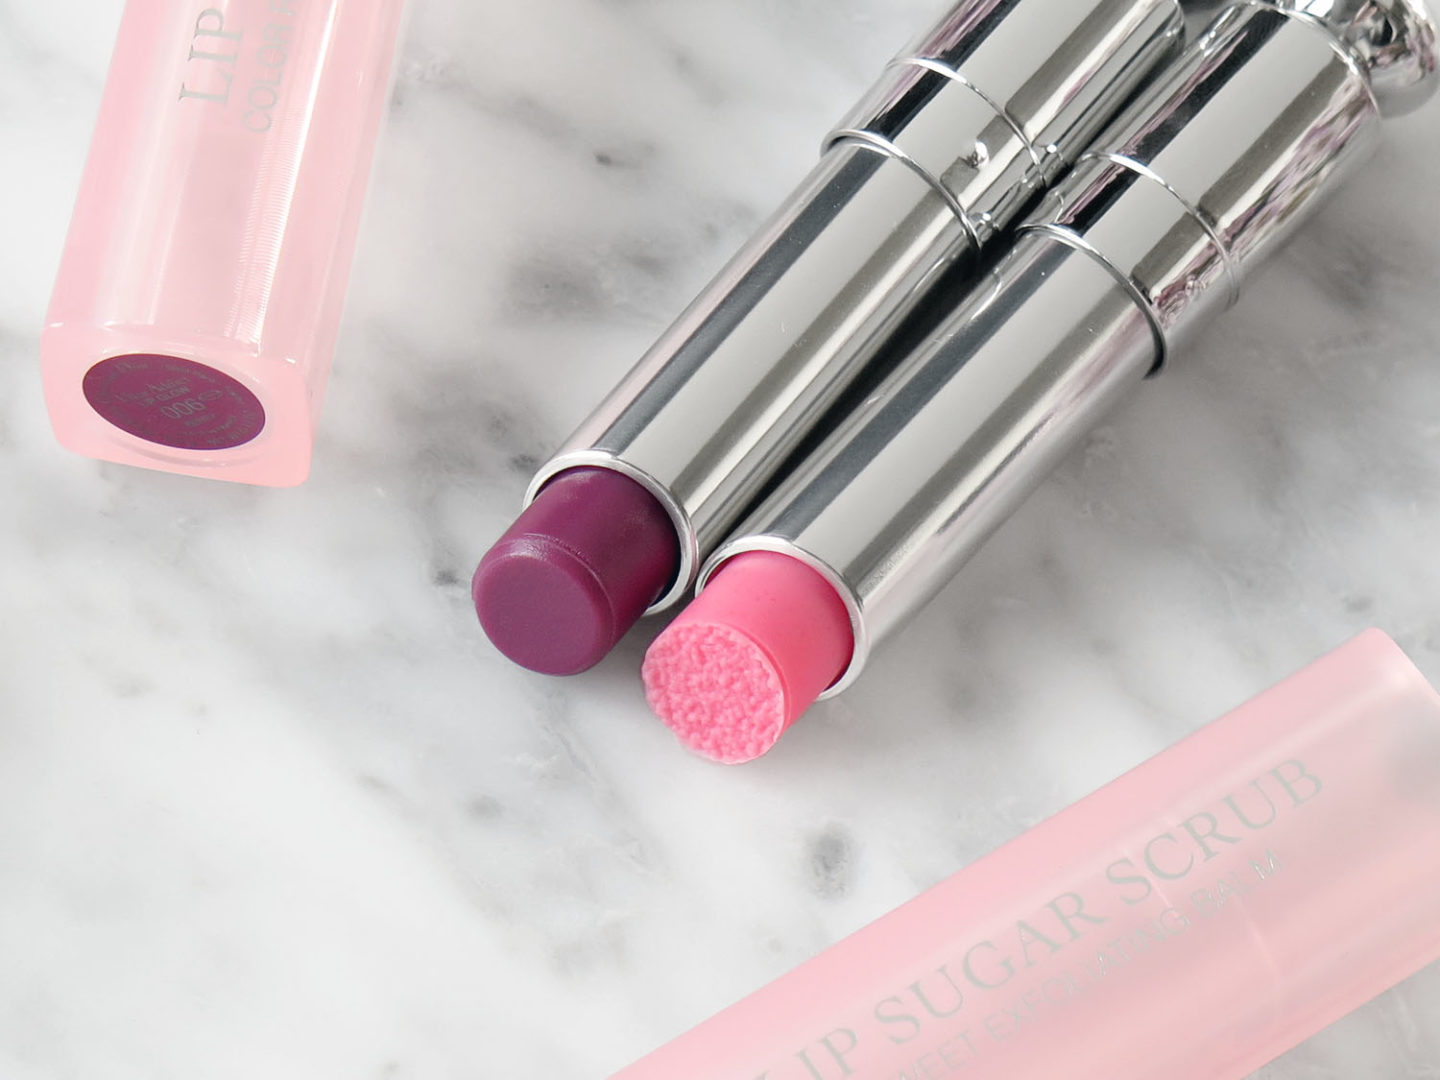 Dior Lip Sugar Scrub and Lip Glow Berry | The Beauty Look Book